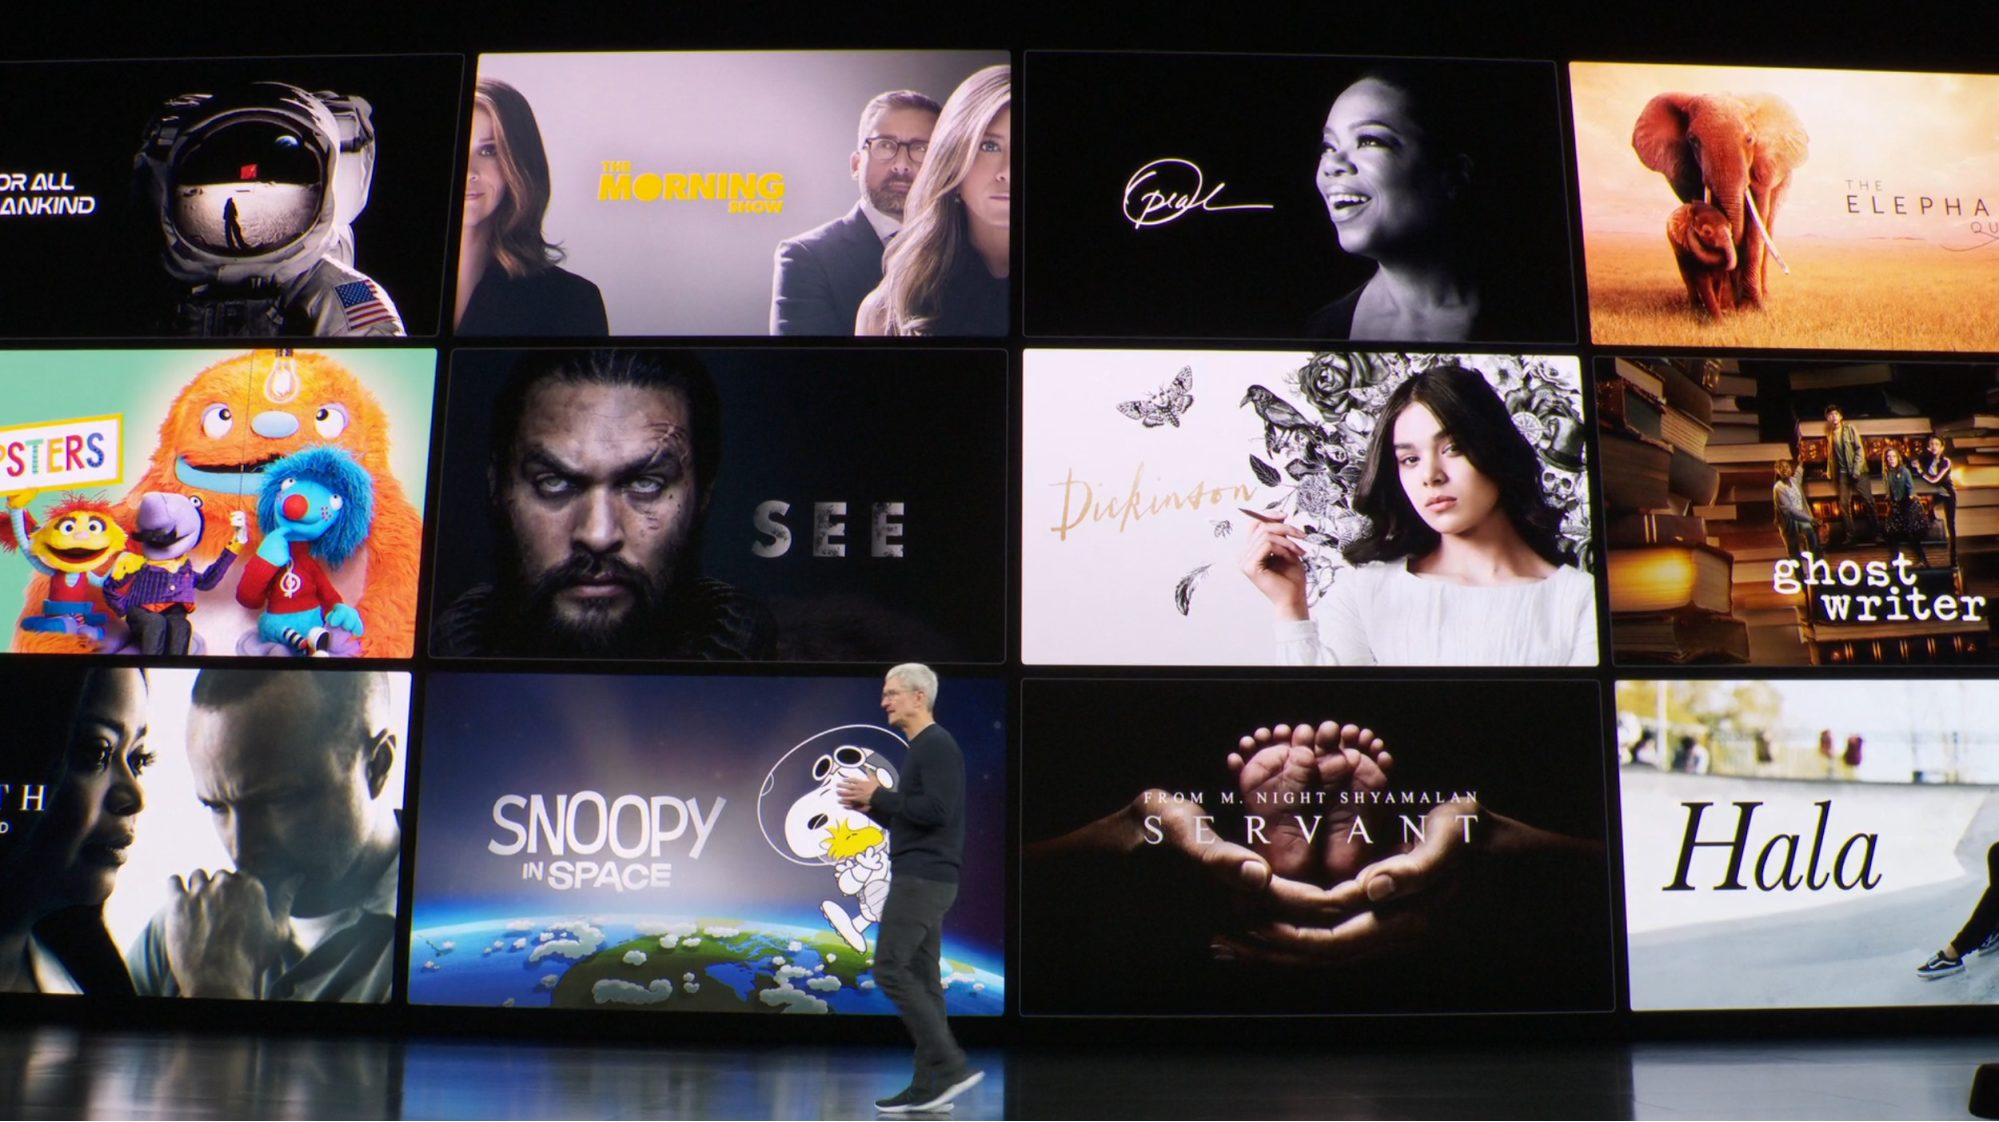 A look at Apple TV+ upcoming shows